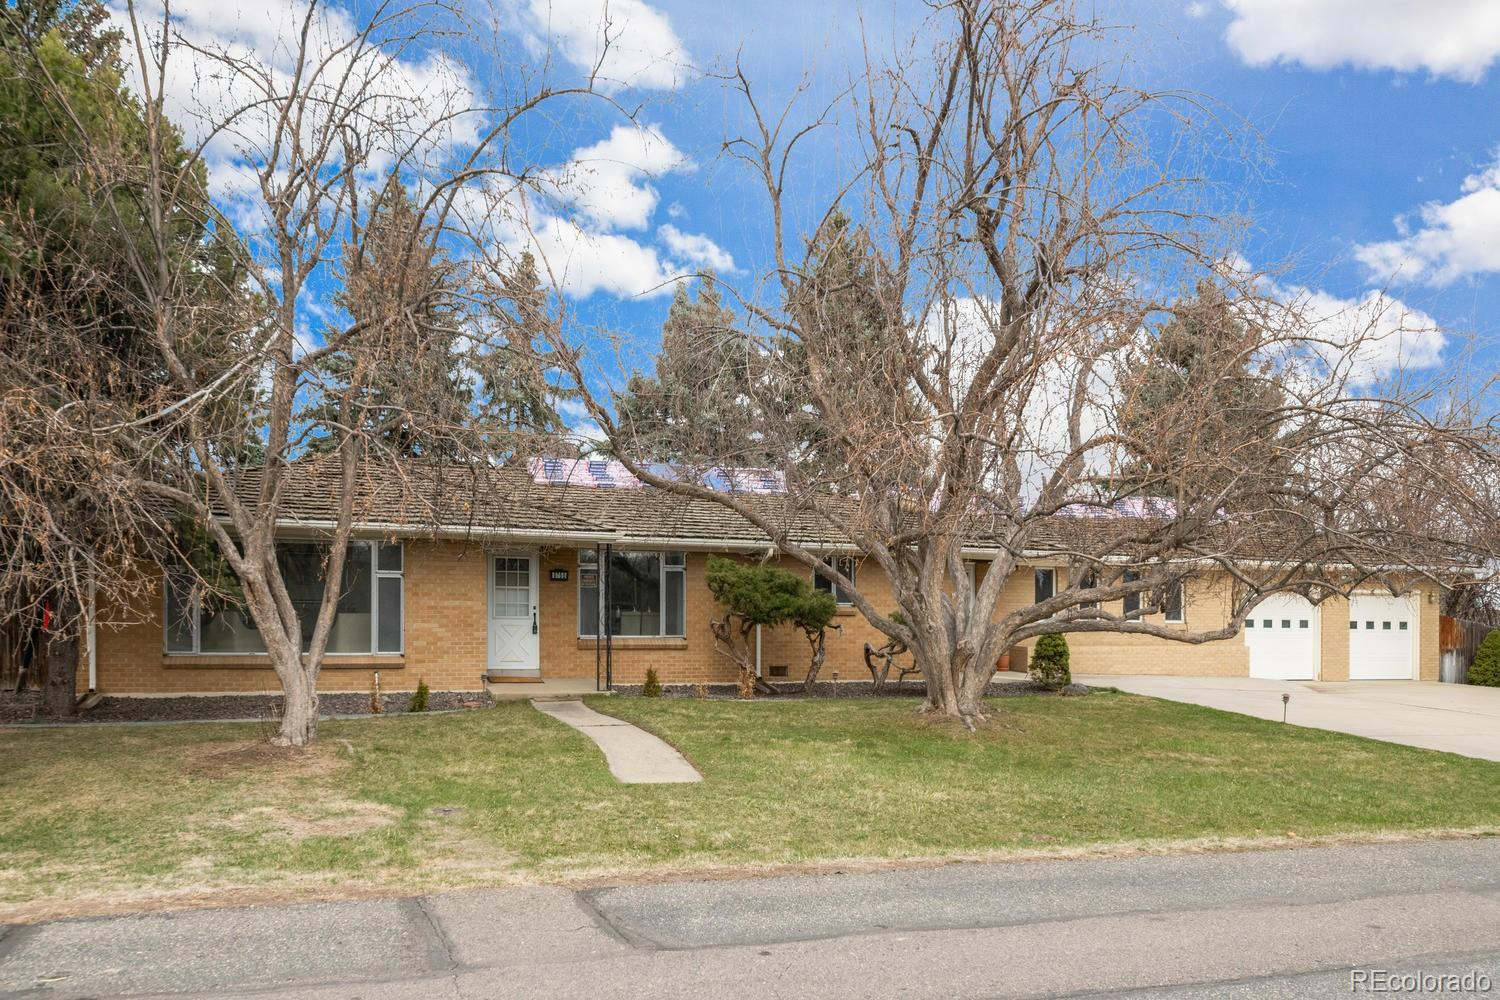 MLS# 9108794 - 2 - 8755 W 73rd Place, Arvada, CO 80005